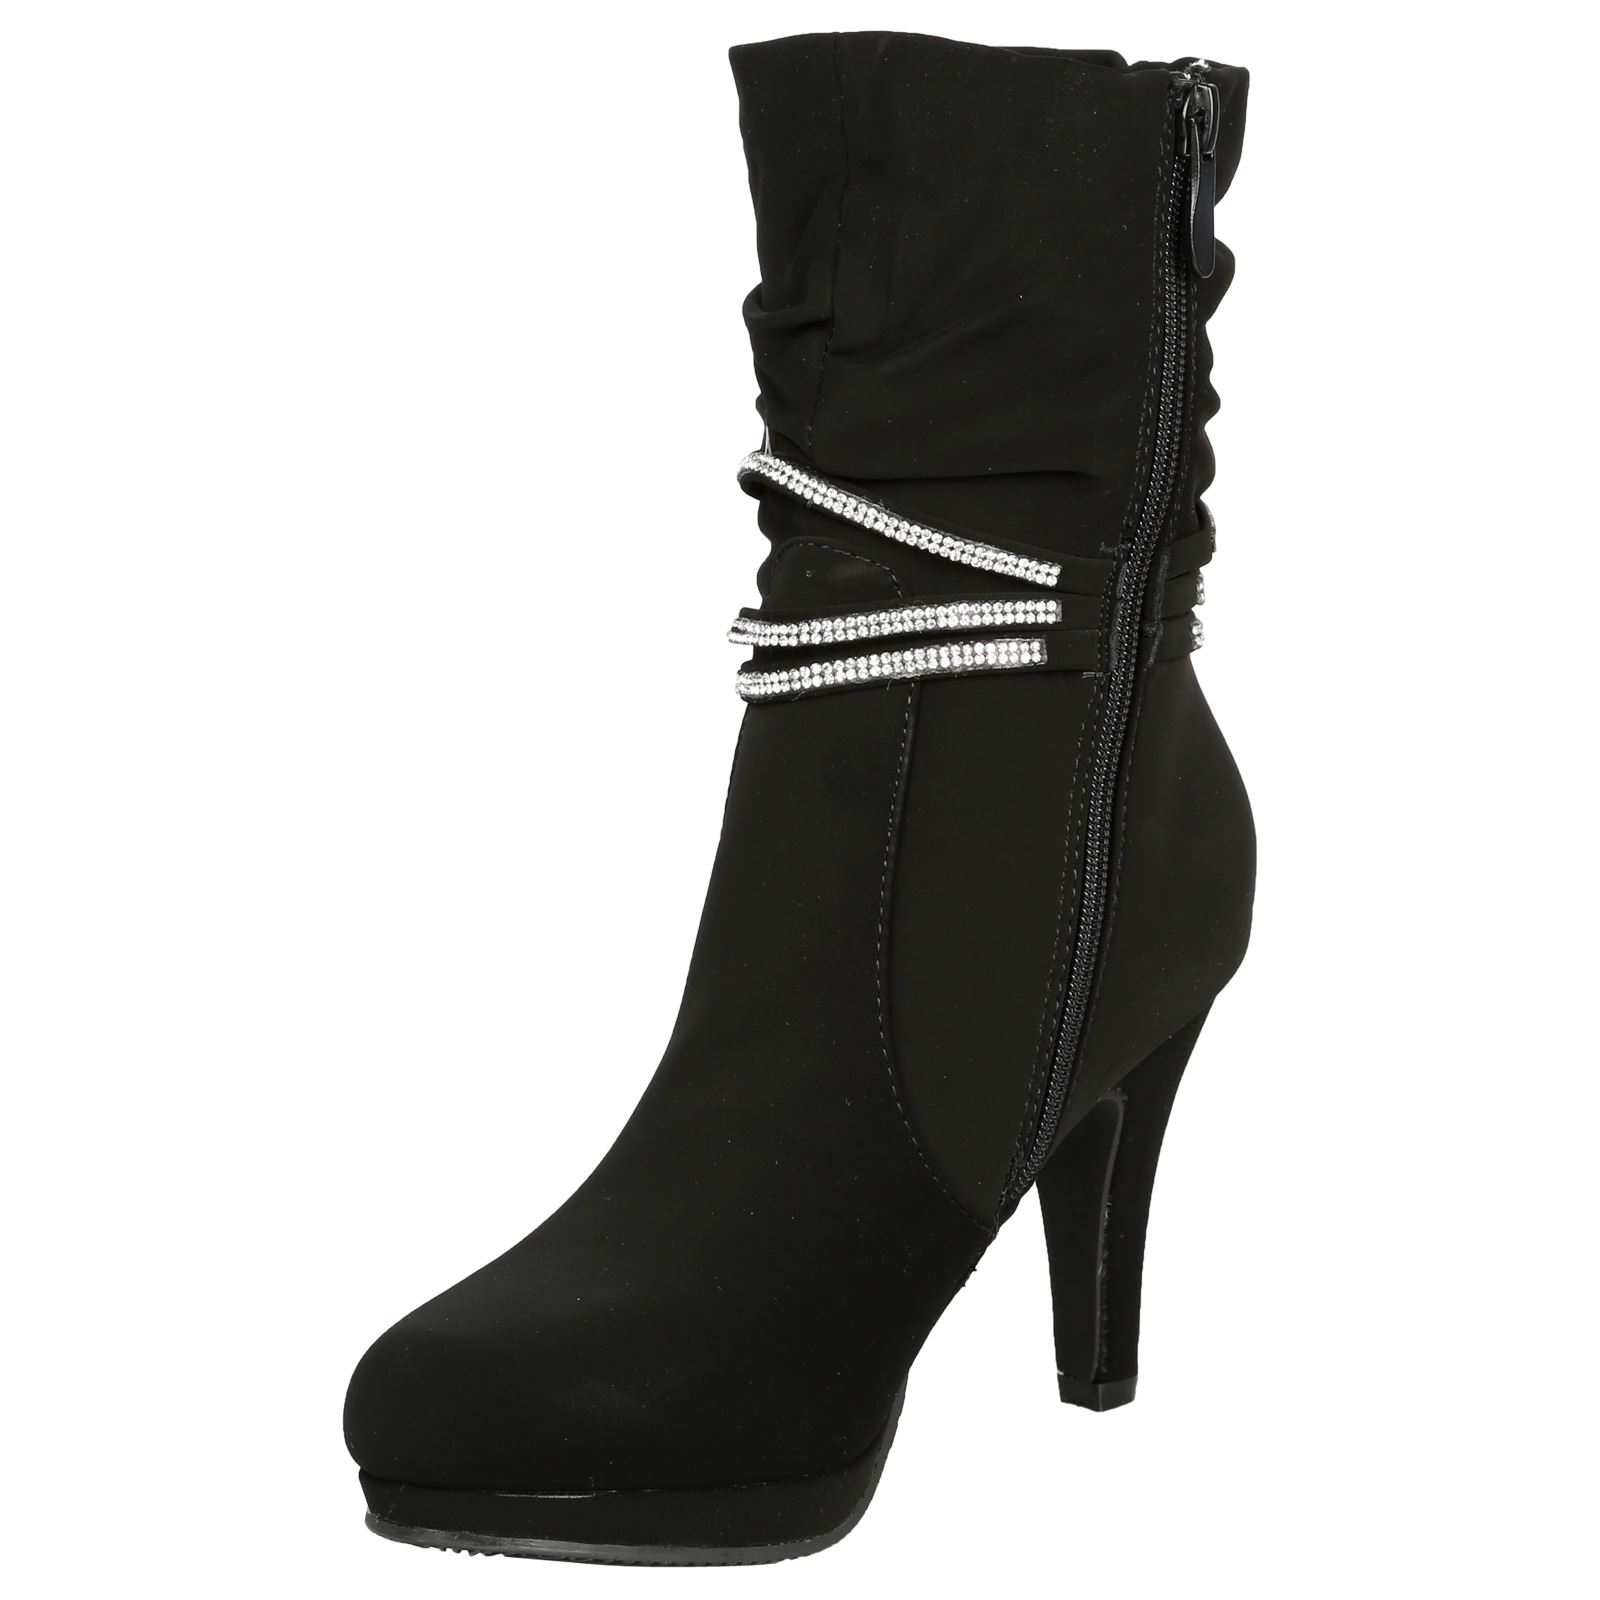 Estrella-Womens-Slim-High-Heel-Diamante-Strap-Slouch-Ankle-Boots-Casual-Style thumbnail 4